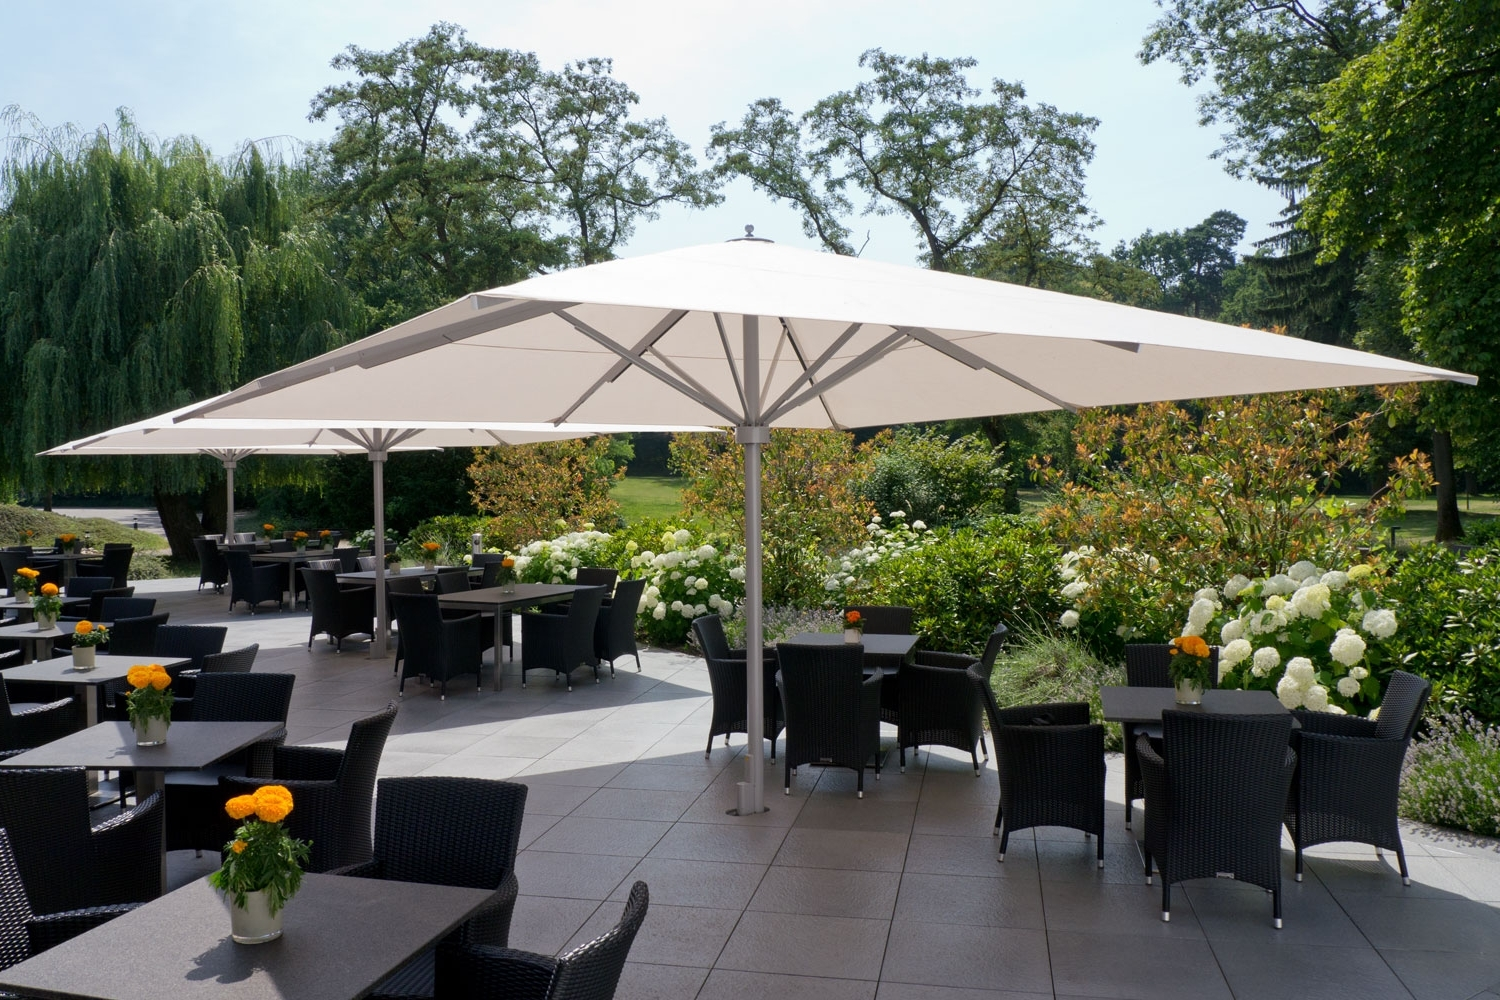 Caravita – Exclusive Commercial Patio Umbrellas Intended For Best And Newest European Patio Umbrellas (View 3 of 20)